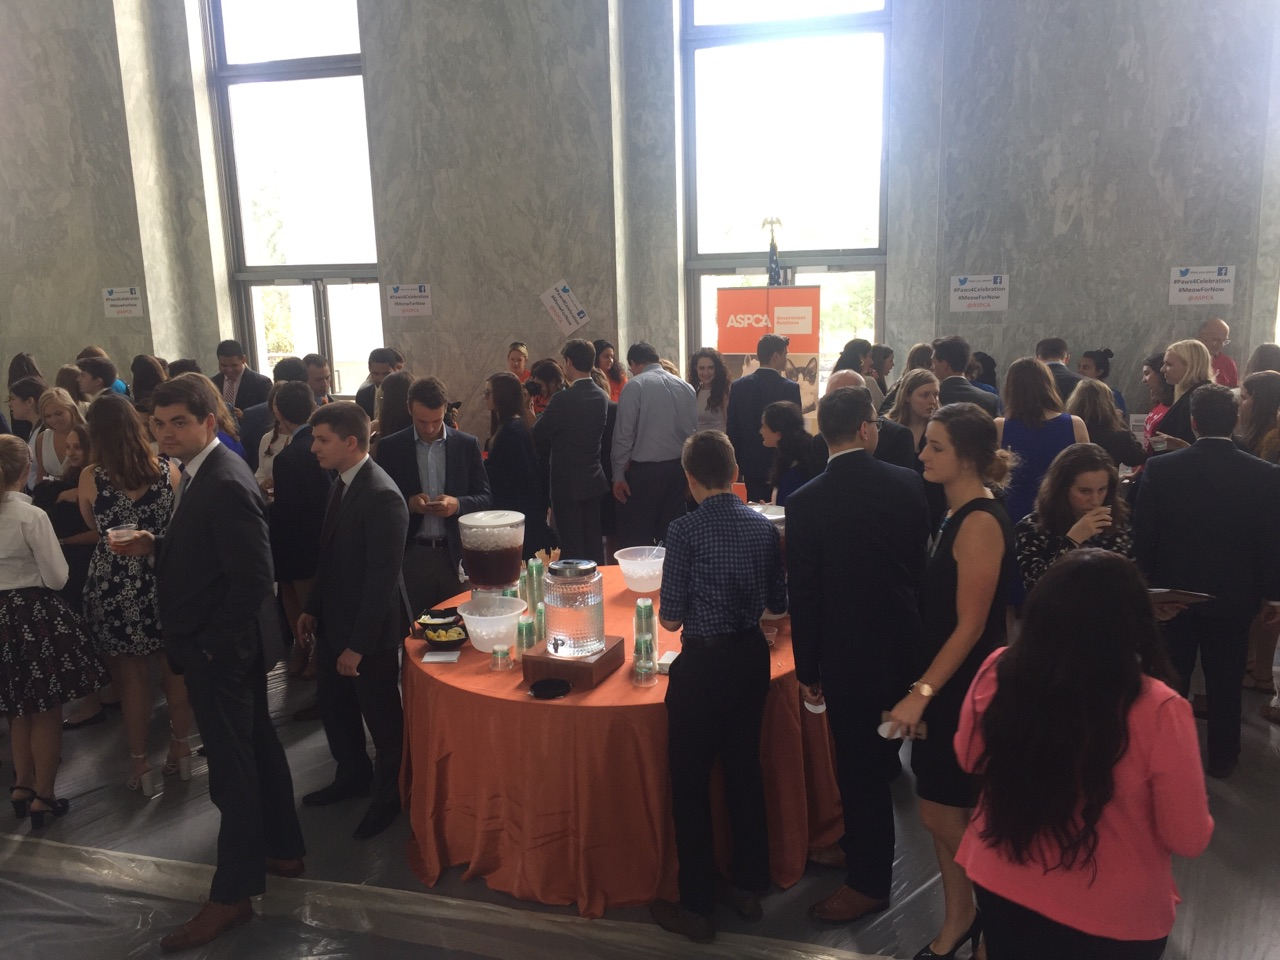 The table of ice tea got pretty crowded at ASPCA's event. (Alex Gangitano/ CQ Roll Call)